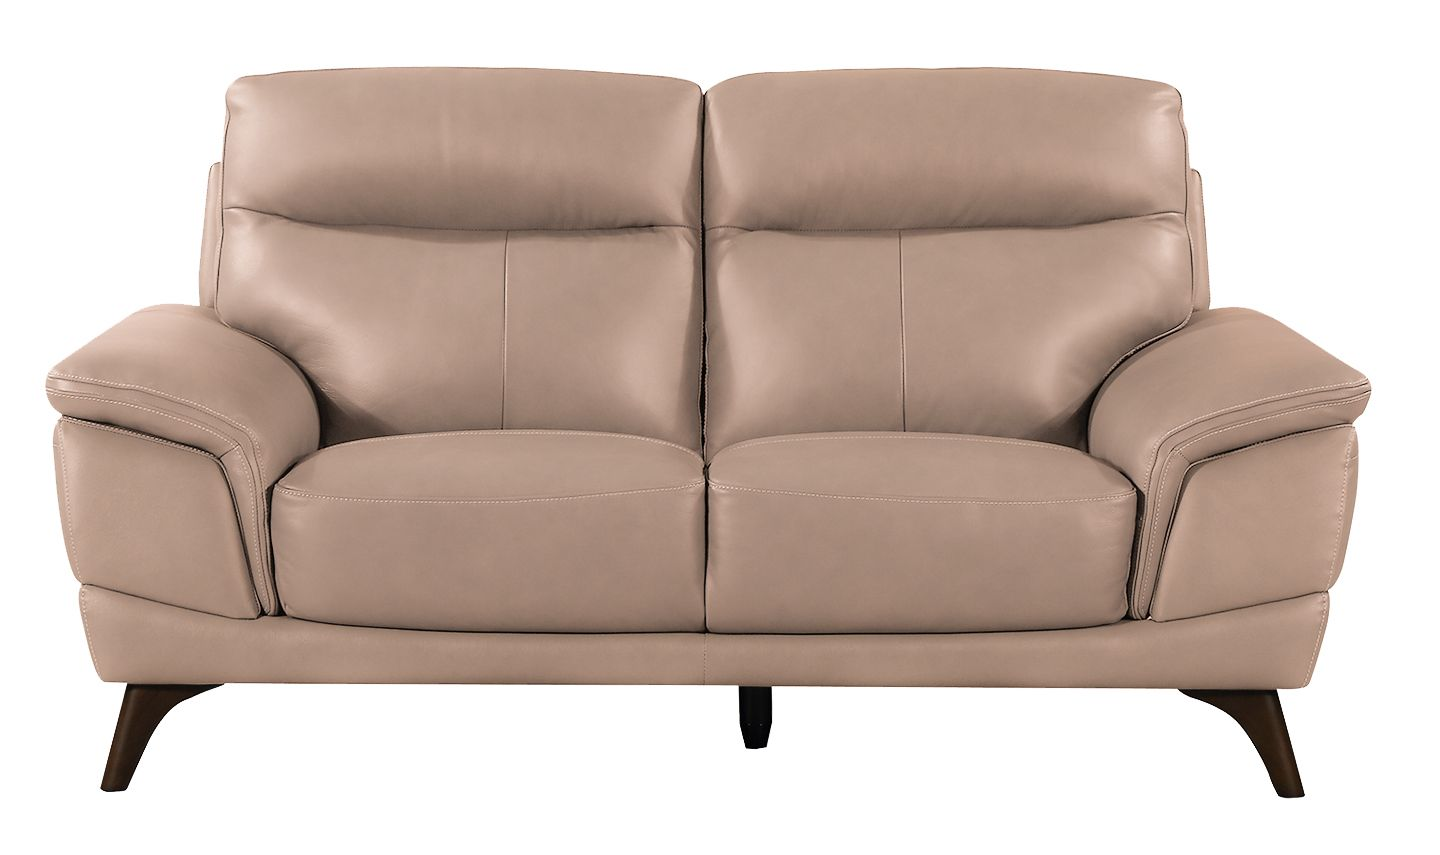 Salerno Taupe Leather 2 Seater Sofa 18vd288